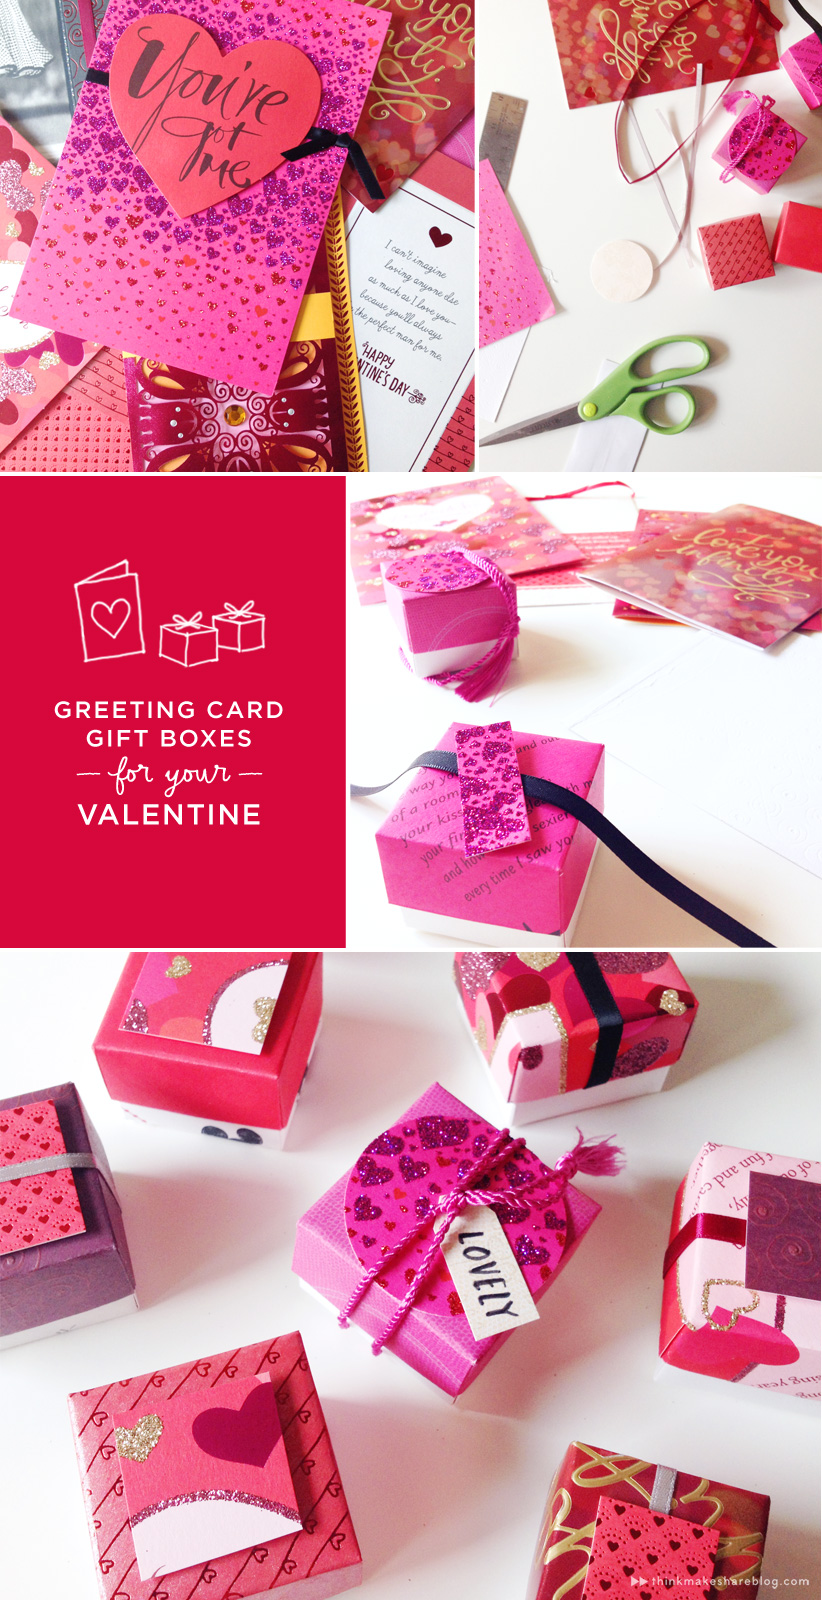 make valentine's day treat boxes out of recycled greeting cards, Birthday card